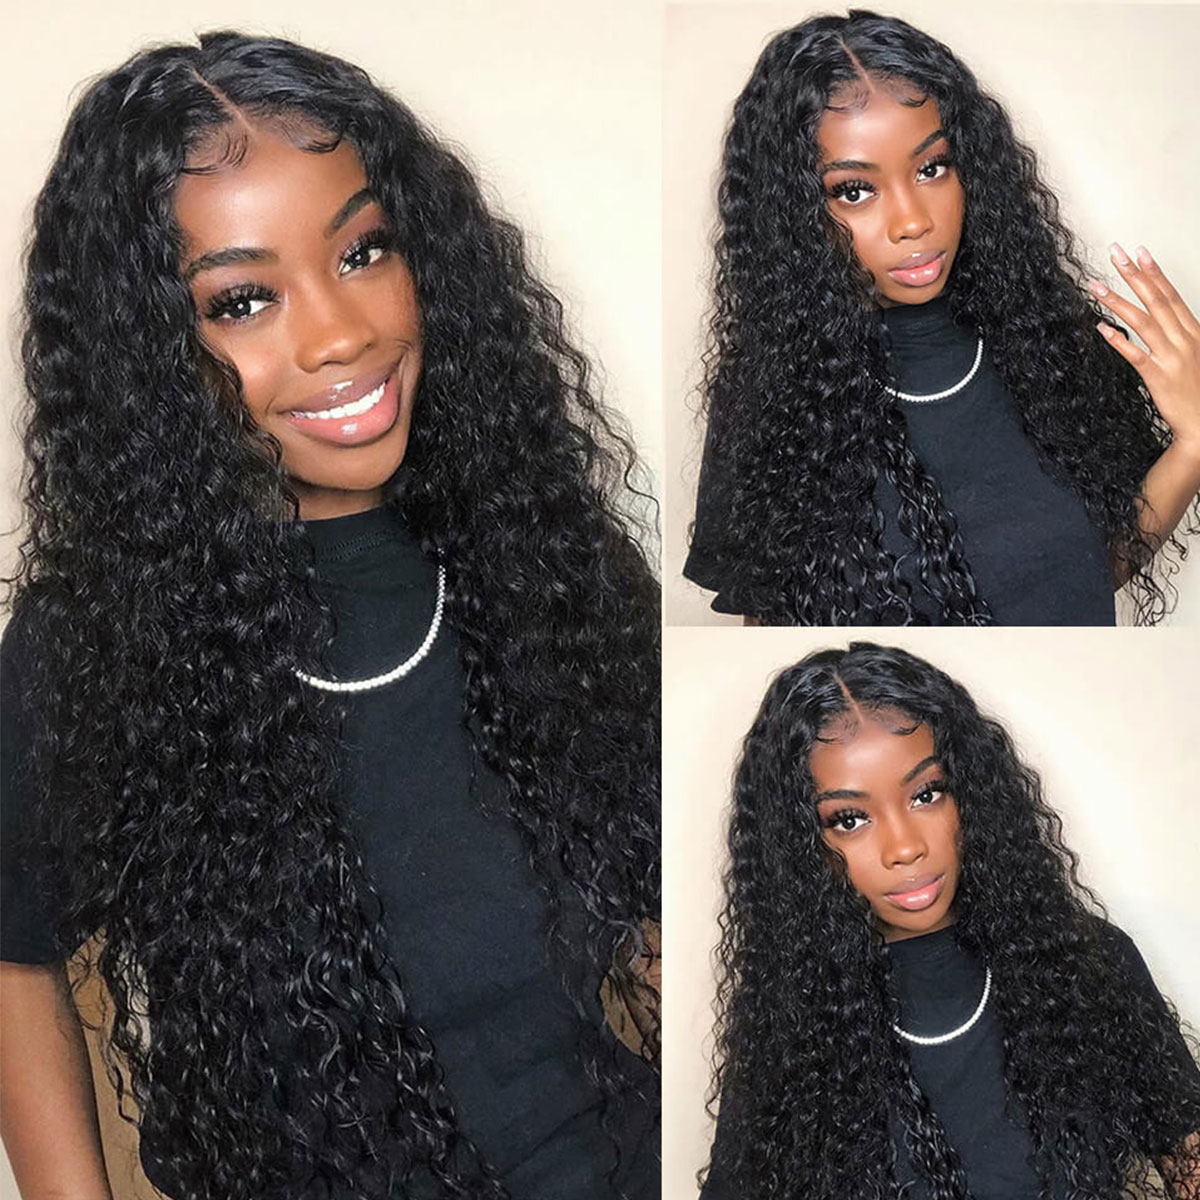 180 Density 6x6 Water Wave Pre Plucked Lace Front Wigs Tinashehair